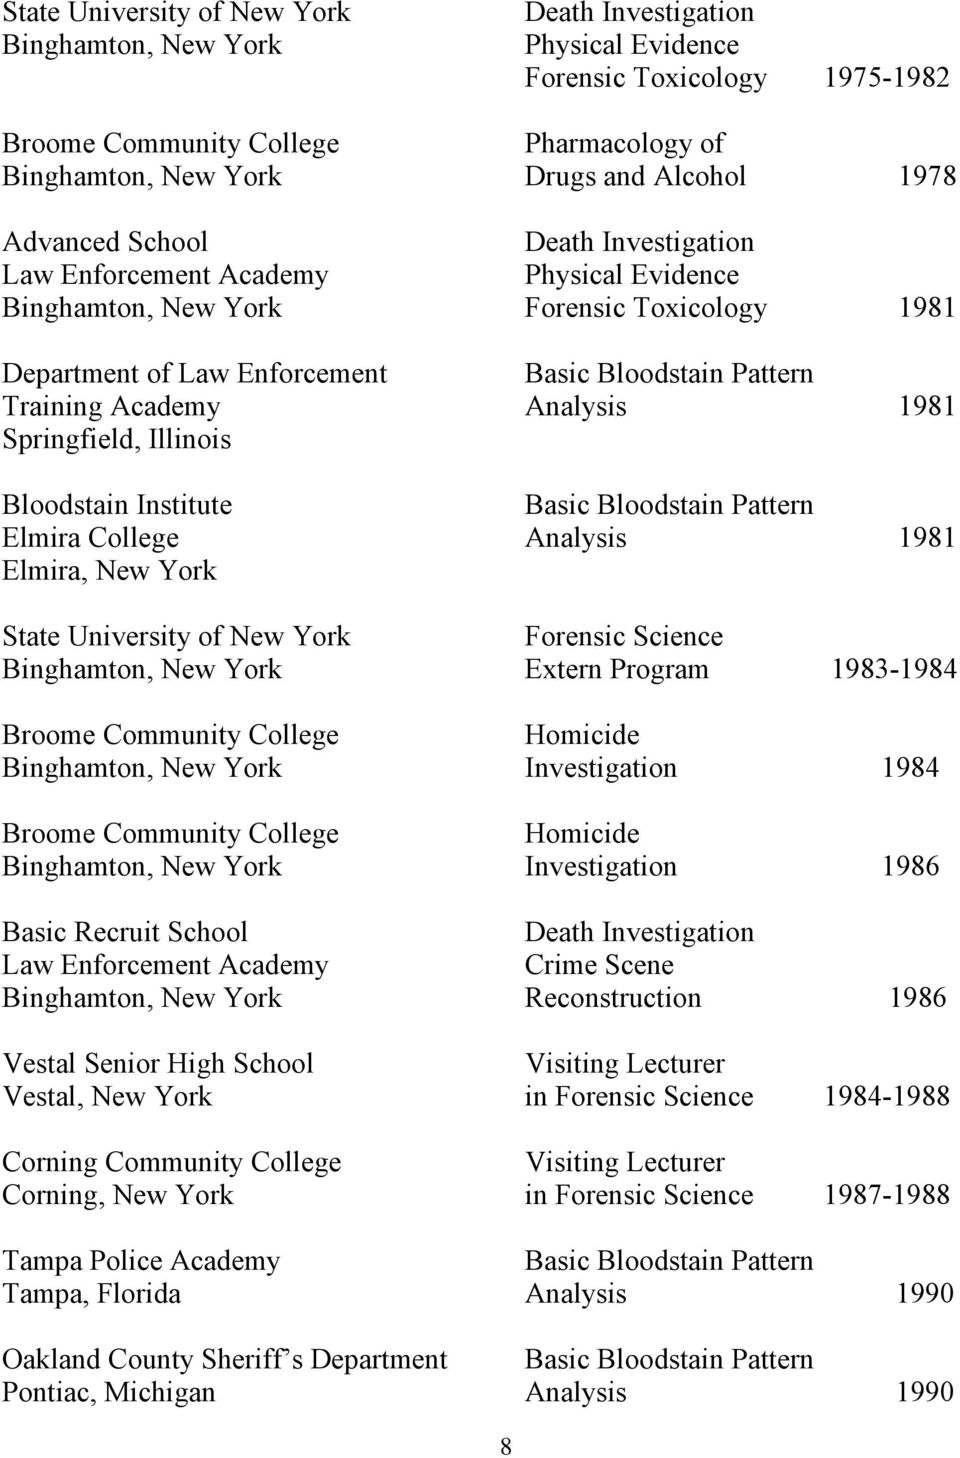 Illinois Bloodstain Institute Basic Elmira College 1981 Elmira, New York State University of New York Forensic Science Binghamton, New York Extern Program 1983-1984 Broome Community College Homicide